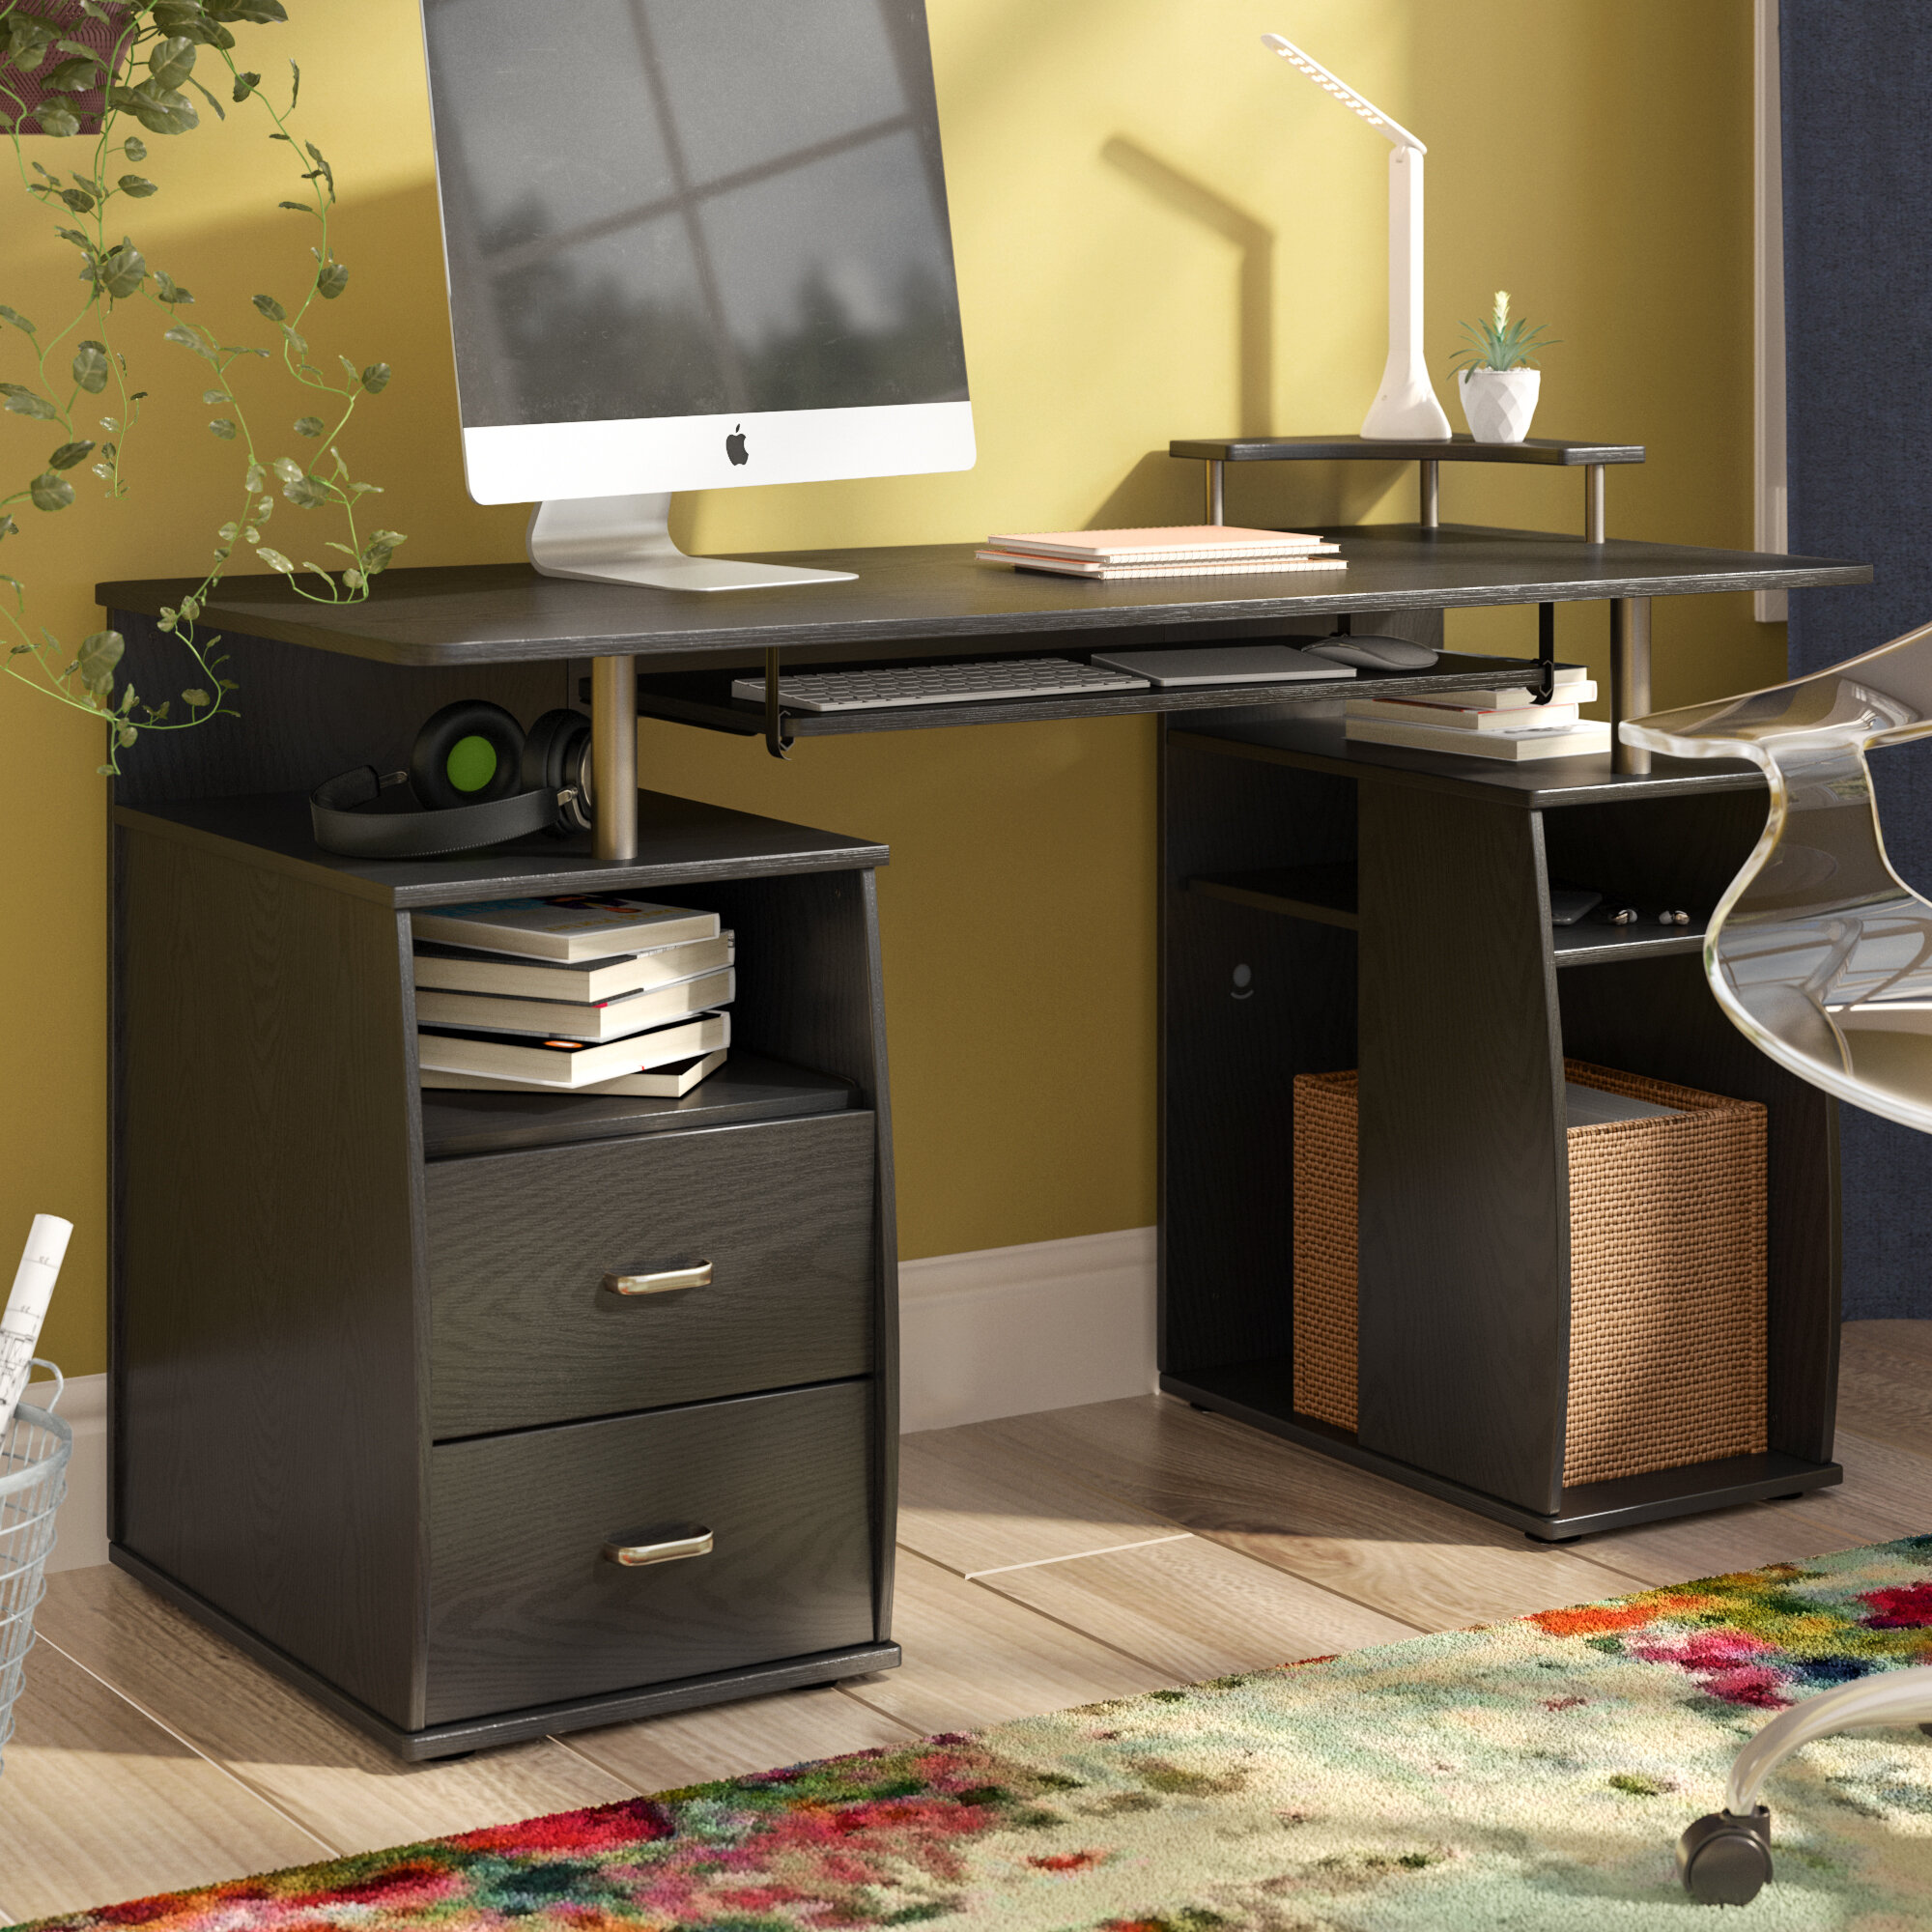 loon furniture filing pdx peak with desk computer newdale wayfair reviews cabinet